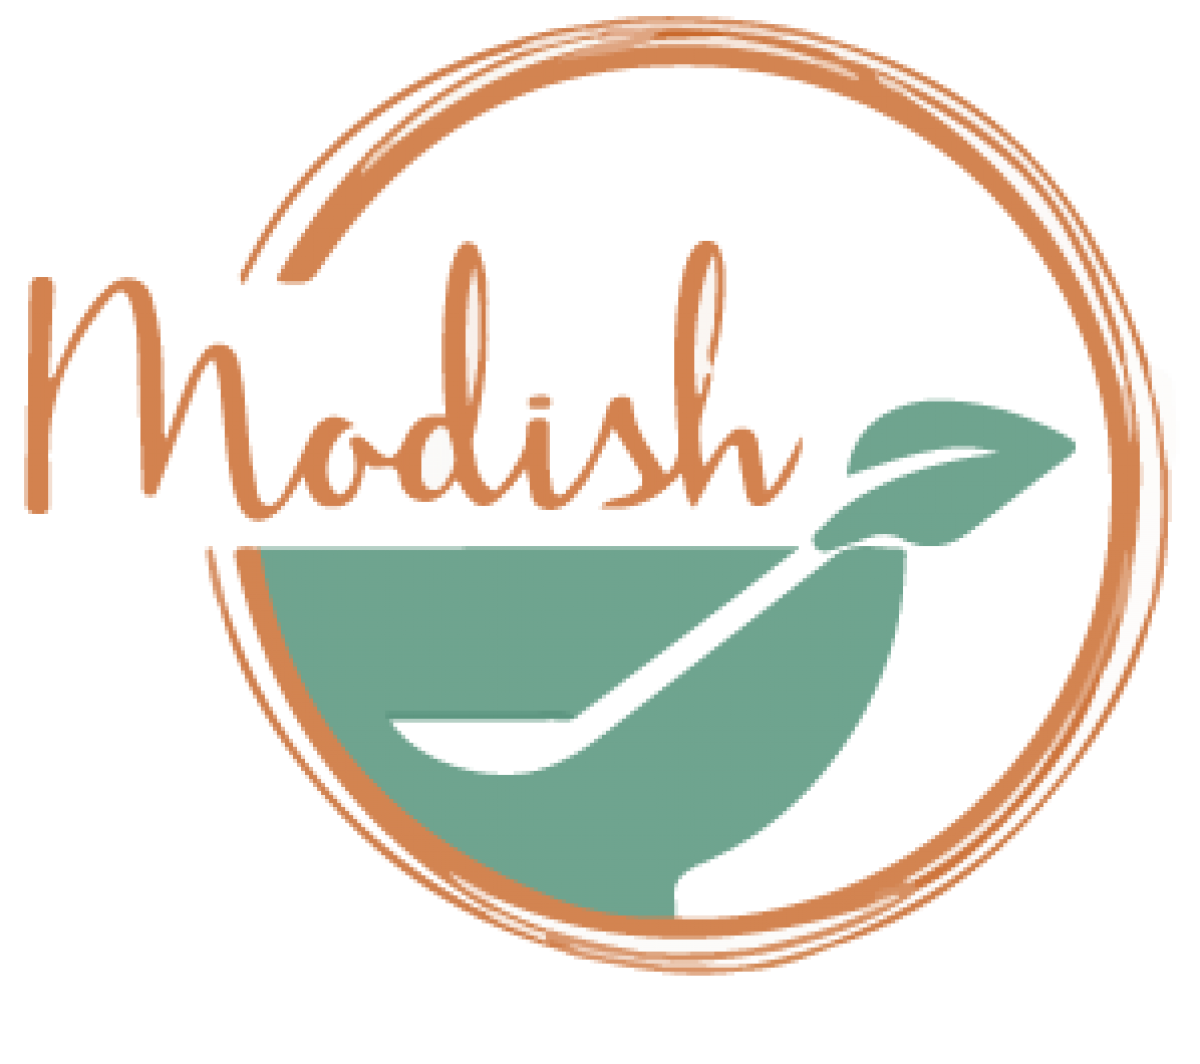 MODISH FOOD DESIGN